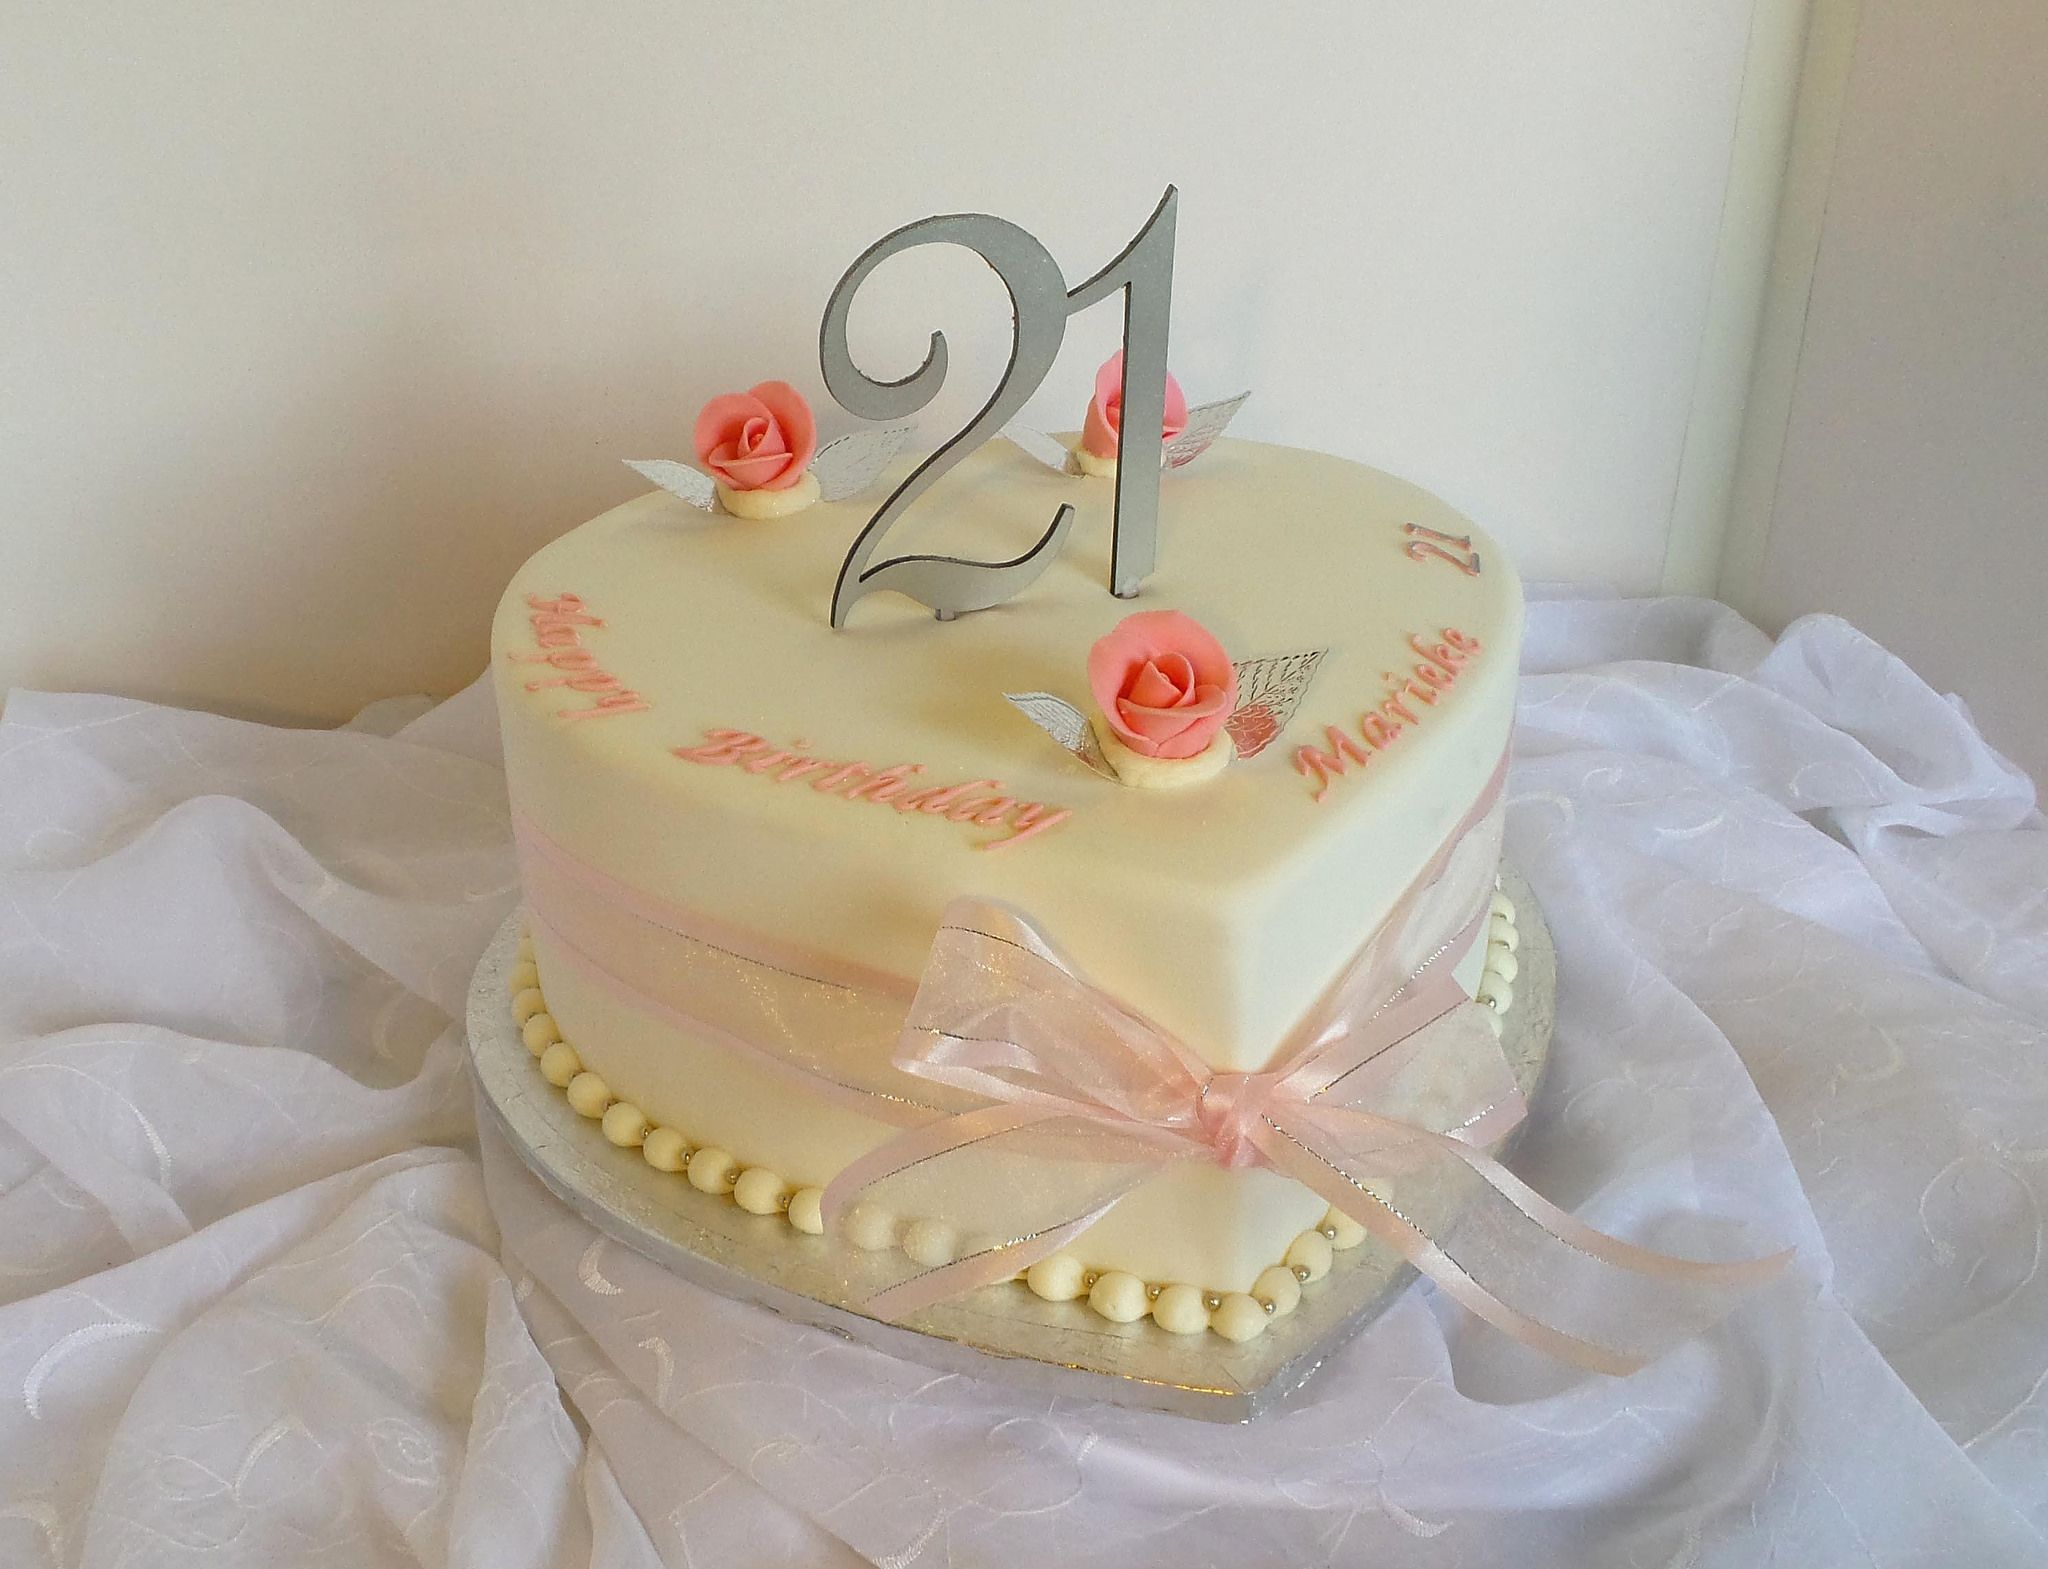 21st Heart Shaped Birthday Cake Willi Probst Bakery